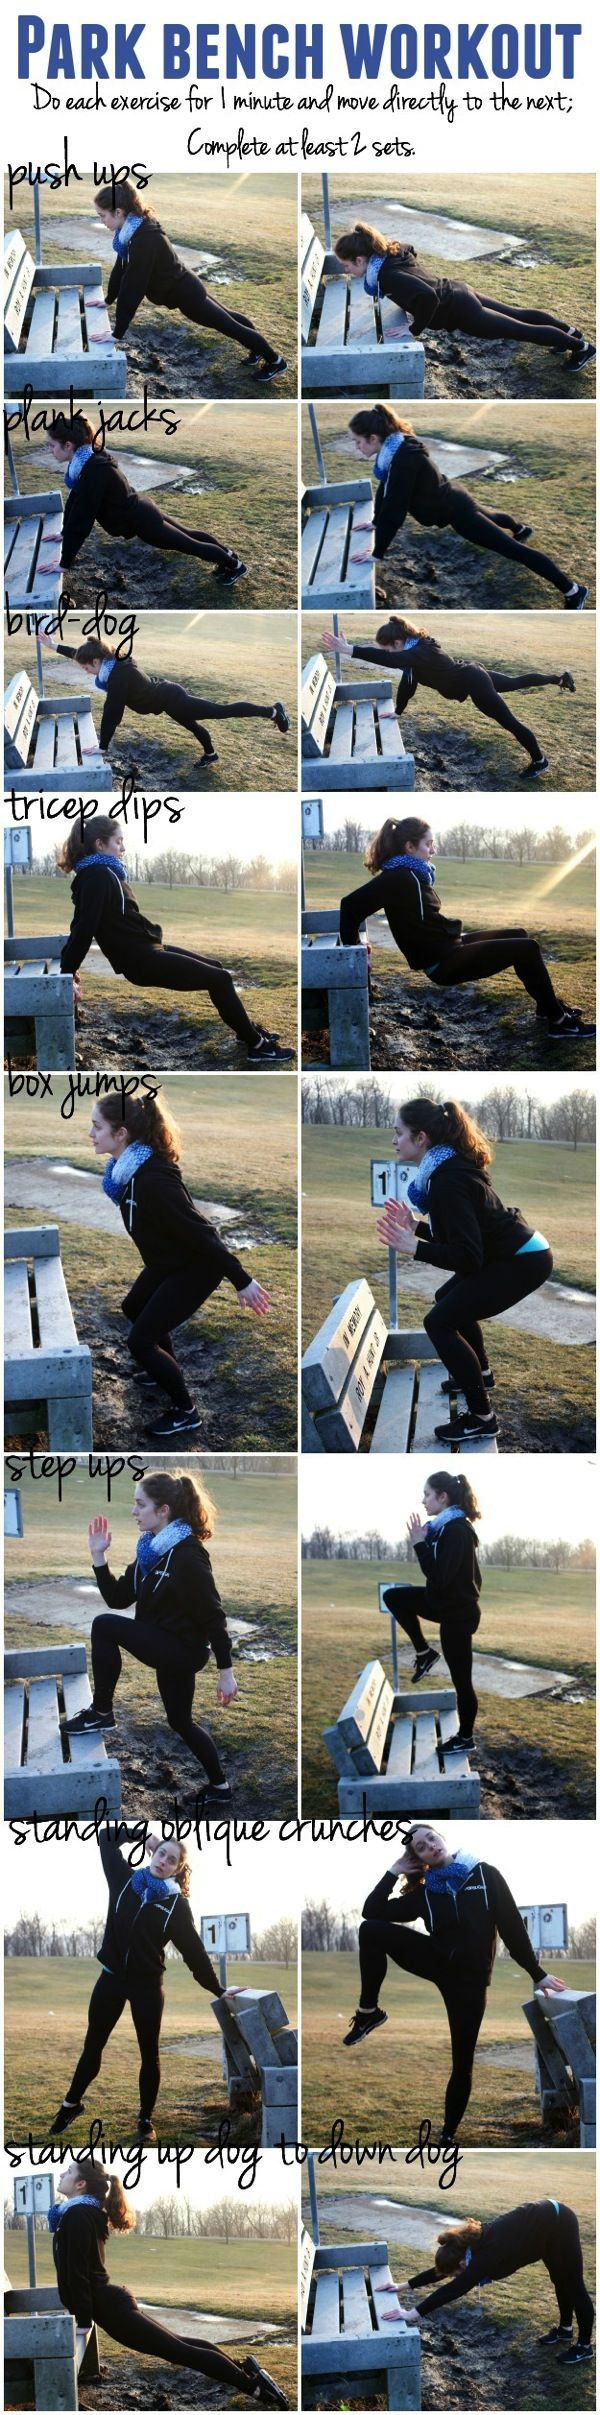 All you need is a bench and your body weight for this full body workout!